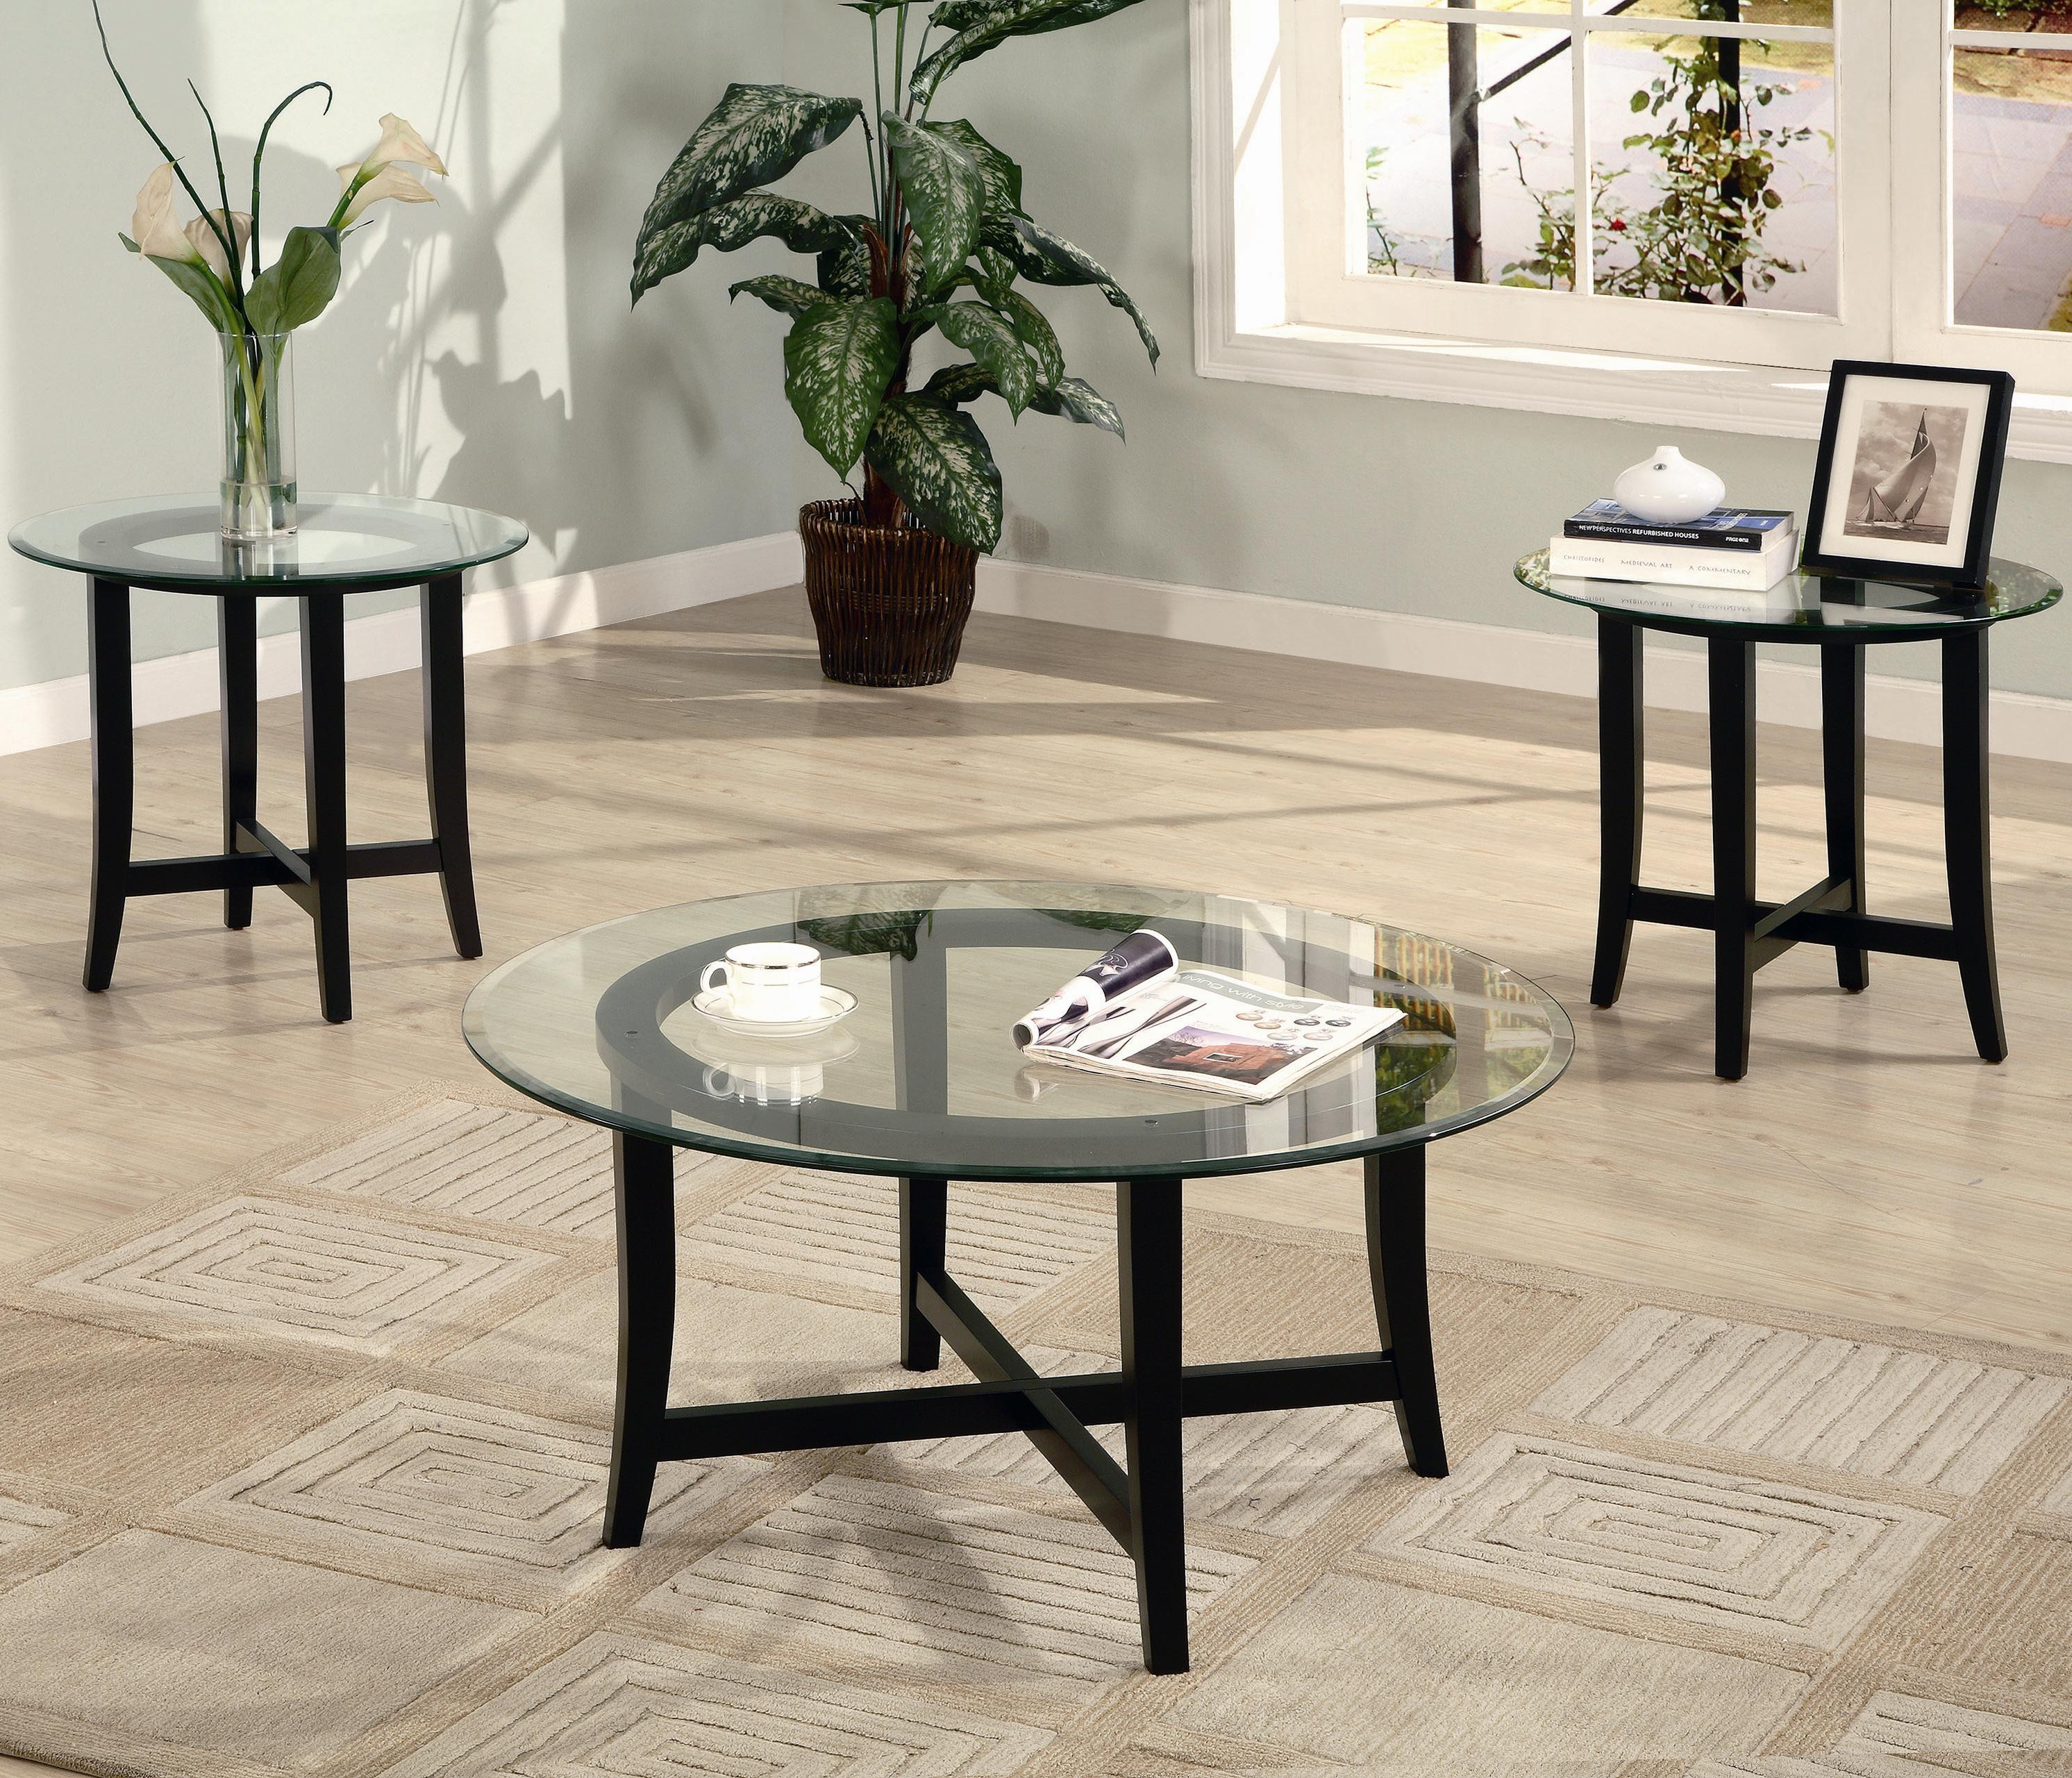 Tables occasional blogger table connect table - Coaster Occasional Table Sets Contemporary 3 Piece Occasional Table Set Coaster Fine Furniture